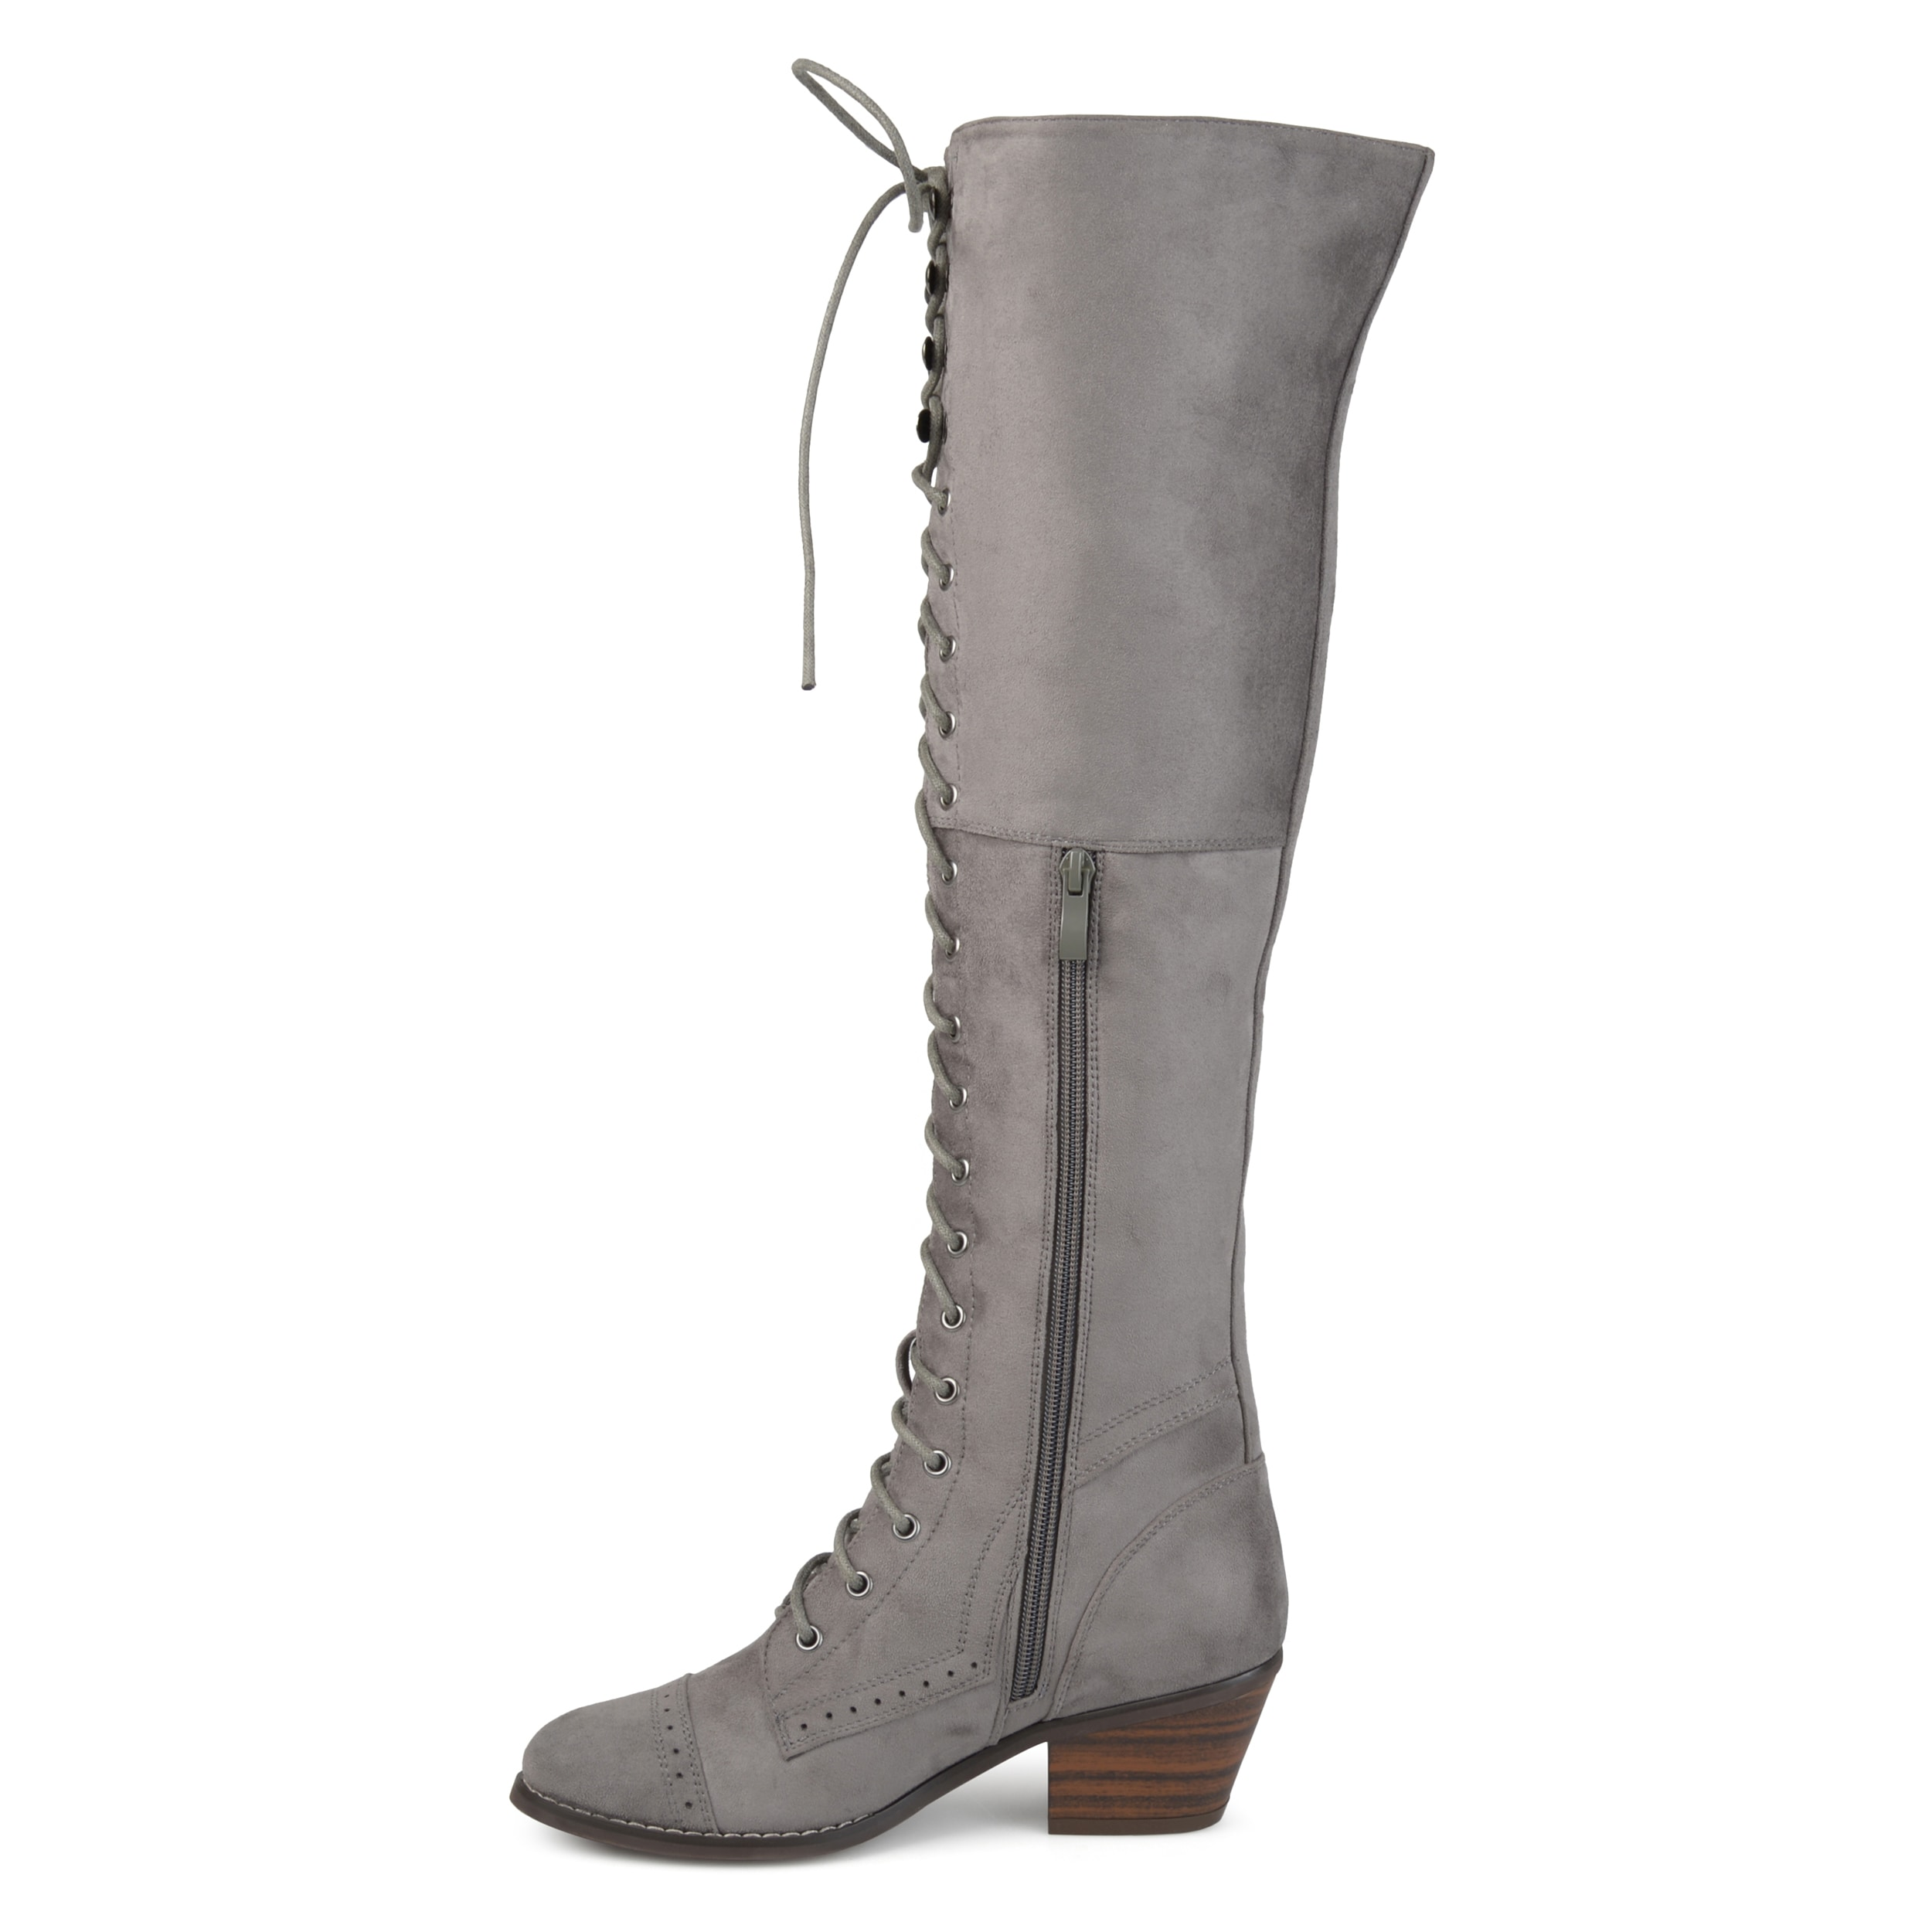 48bebed59b3 Shop Journee Collection Women s  Bazel  Regular and Wide Calf Brogue Lace-up  Over-the-knee Boots - Free Shipping Today - Overstock - 17351916